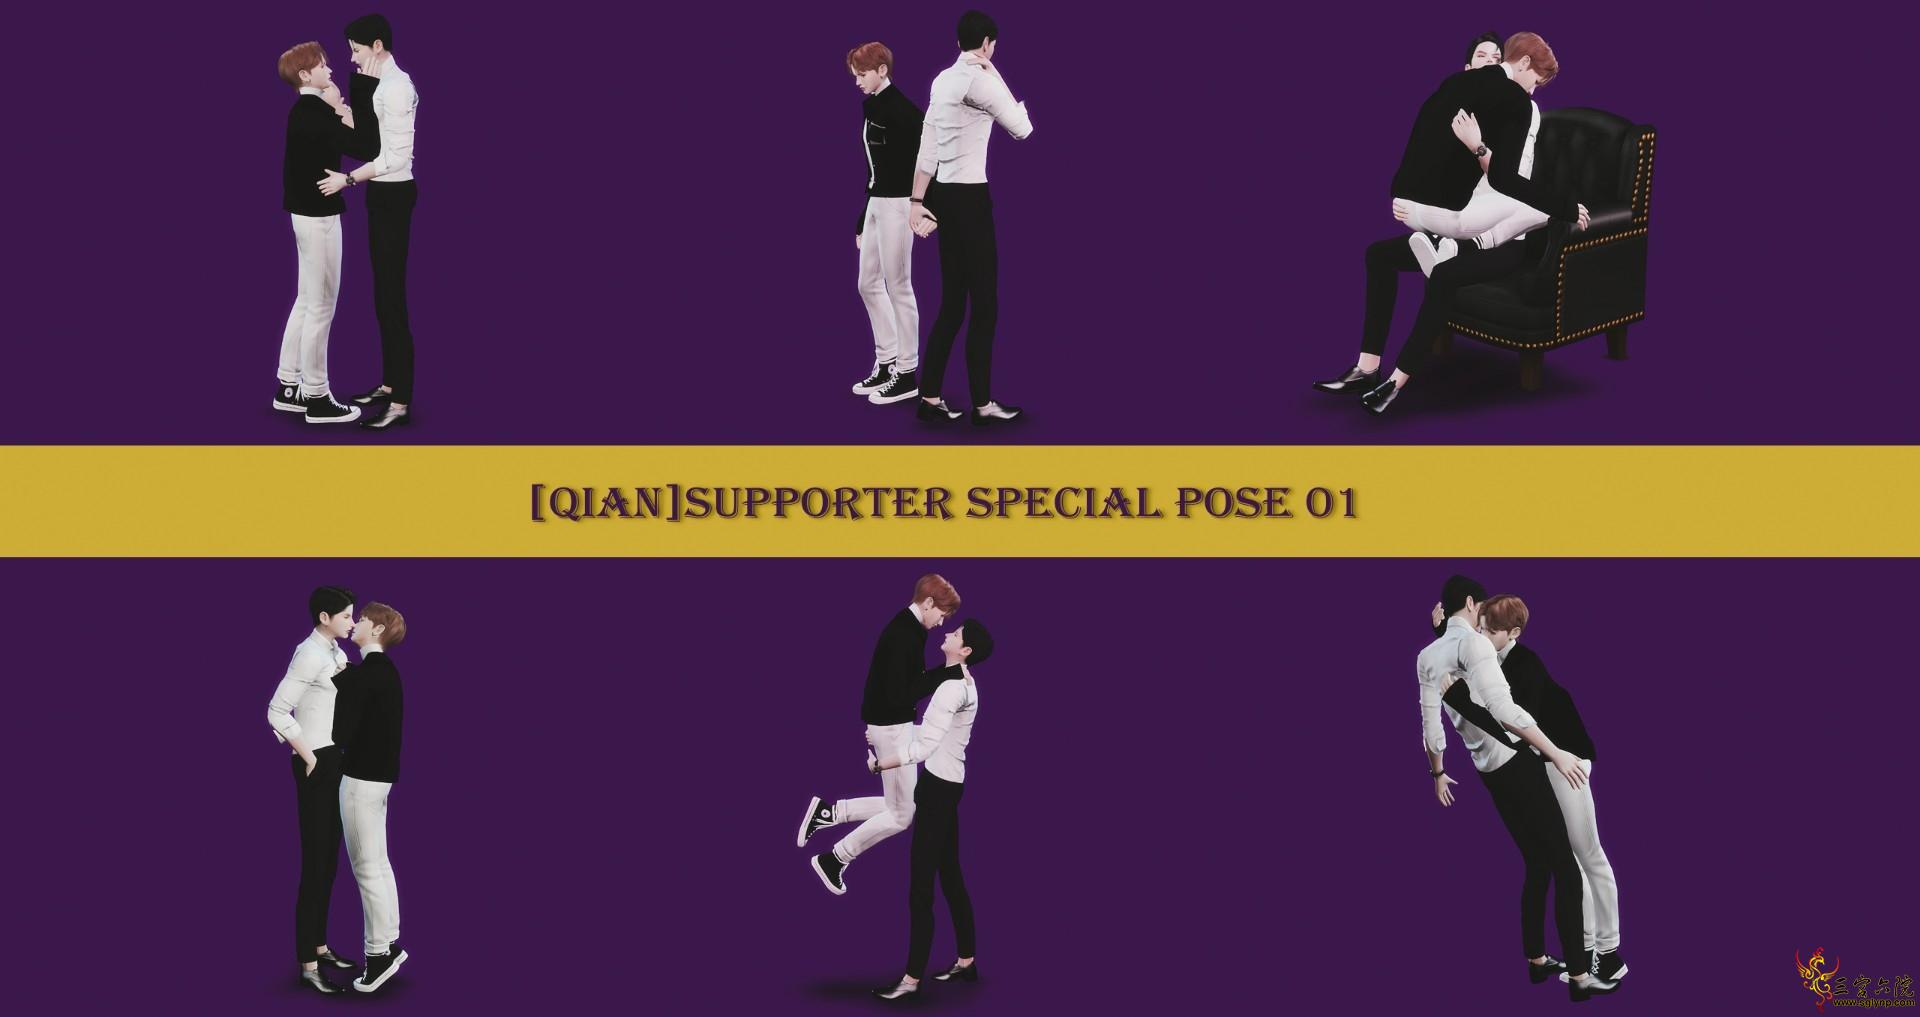 [Qian]Supporter Special pose 01.jpg